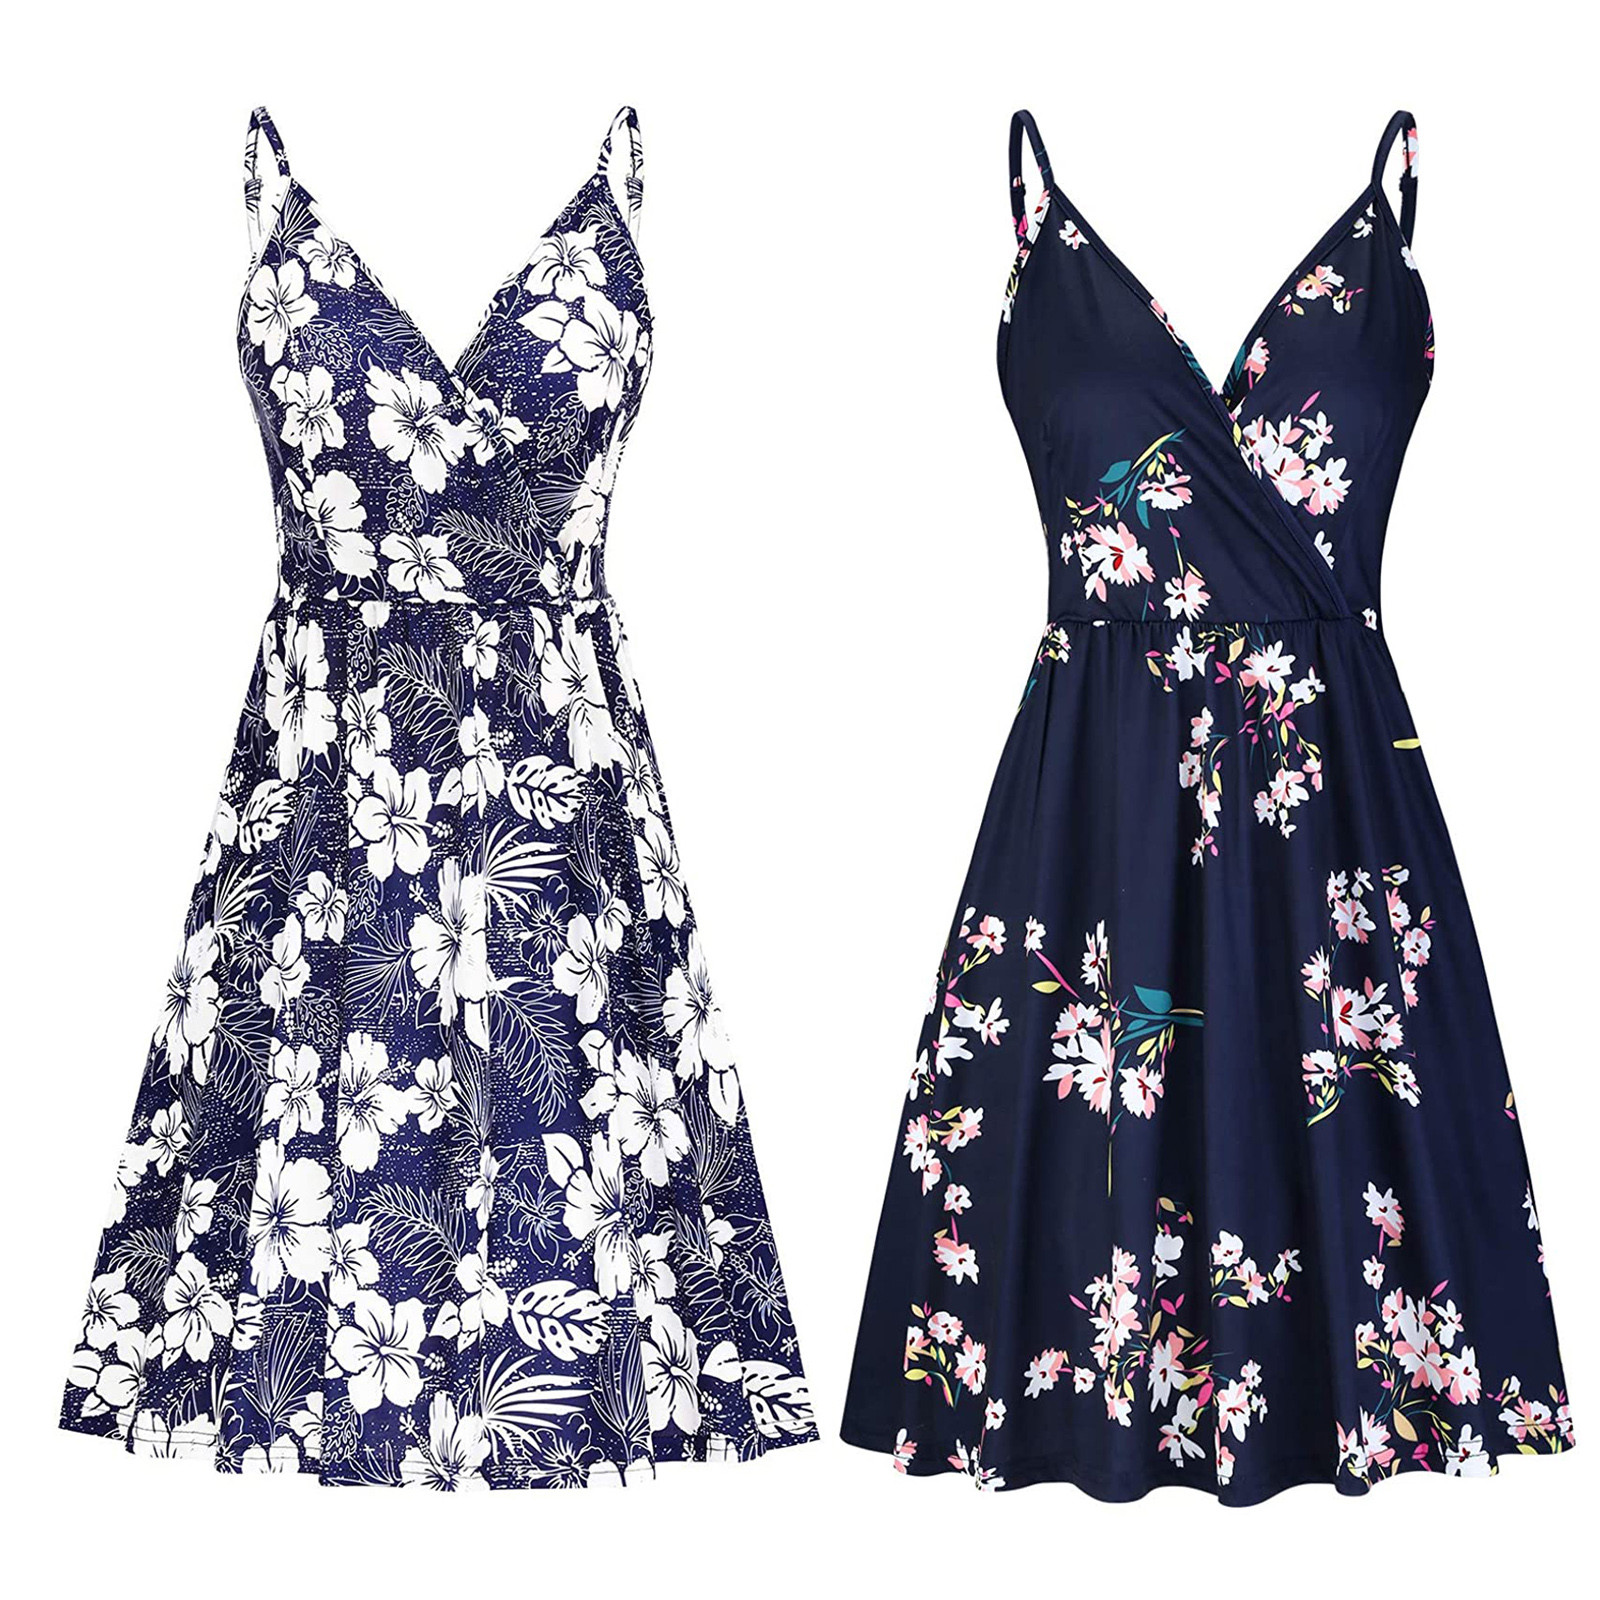 Women's V Neck Floral Spaghetti Strap Summer Casual Swing Dress with Pocket 5